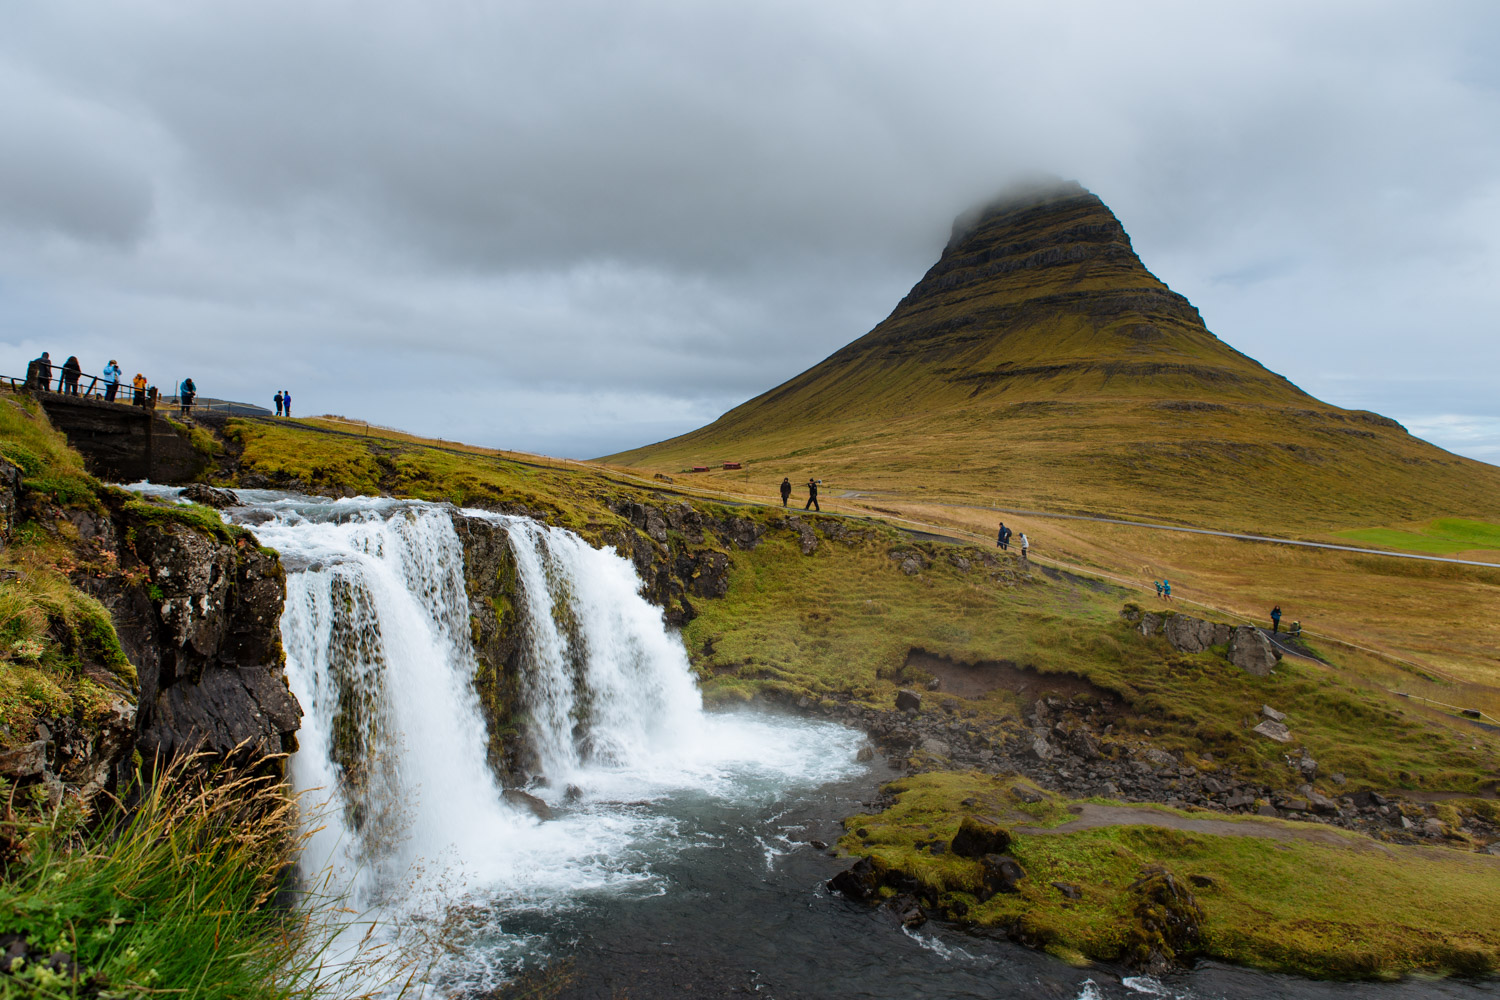 Touring-Iceland-3a.jpg